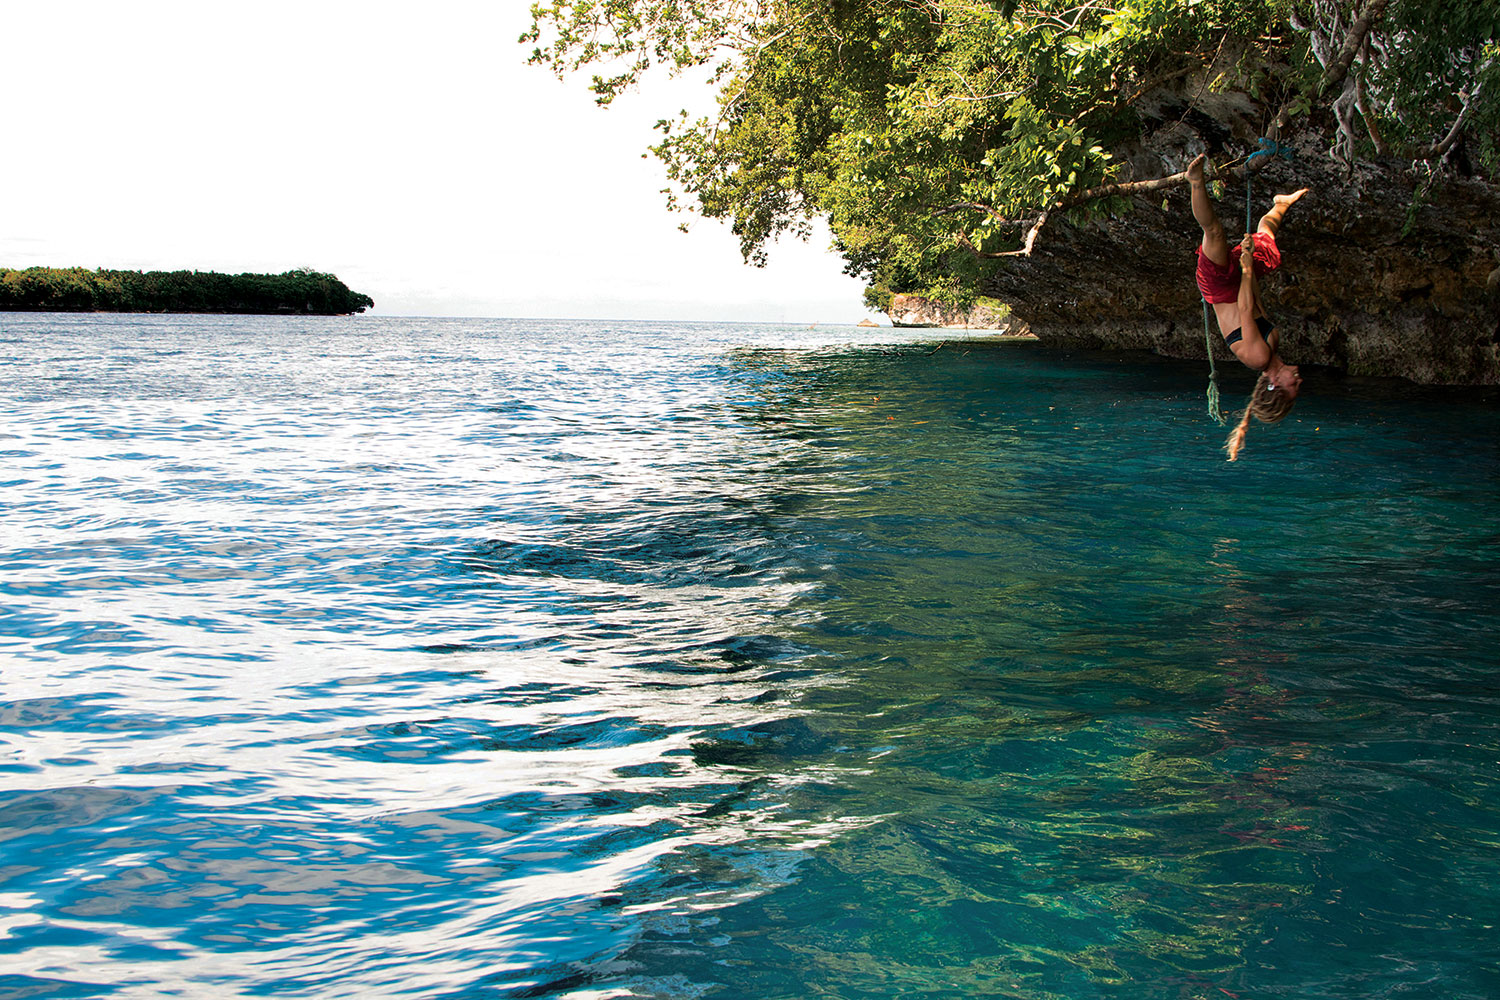 With a huge smile and belly laughs, Charlotte shows her acrobatic prowess on a rope swing hung by children from a nearby village. The turquoise water below hides an extraordinary reef wall for snorkeling and diving, while manta rays frequently migrate through the deep channel beyond.